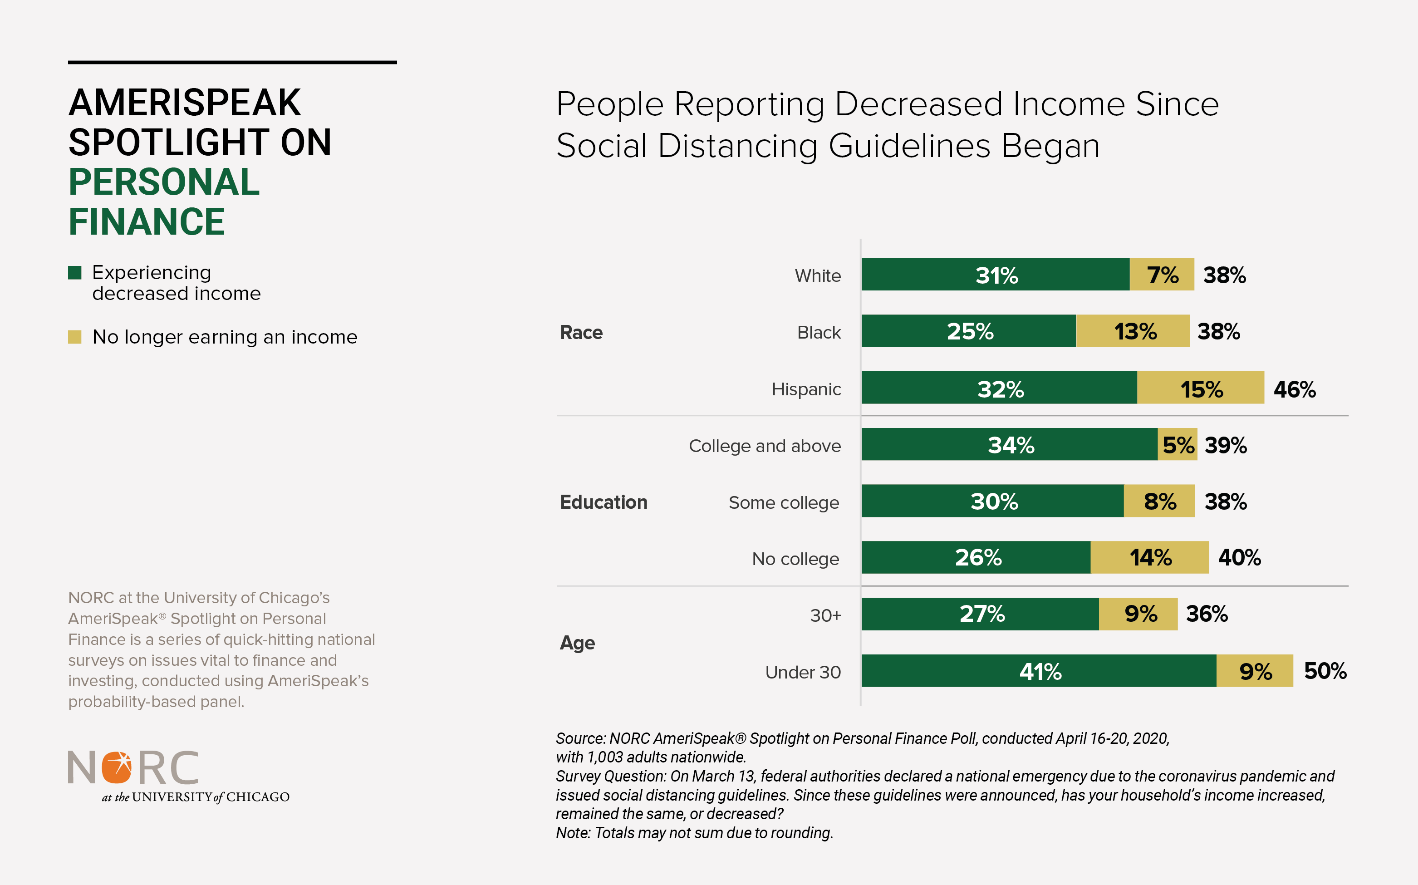 Chart: People Reporting Decreased Income Since Social Distancing Guidelines Began